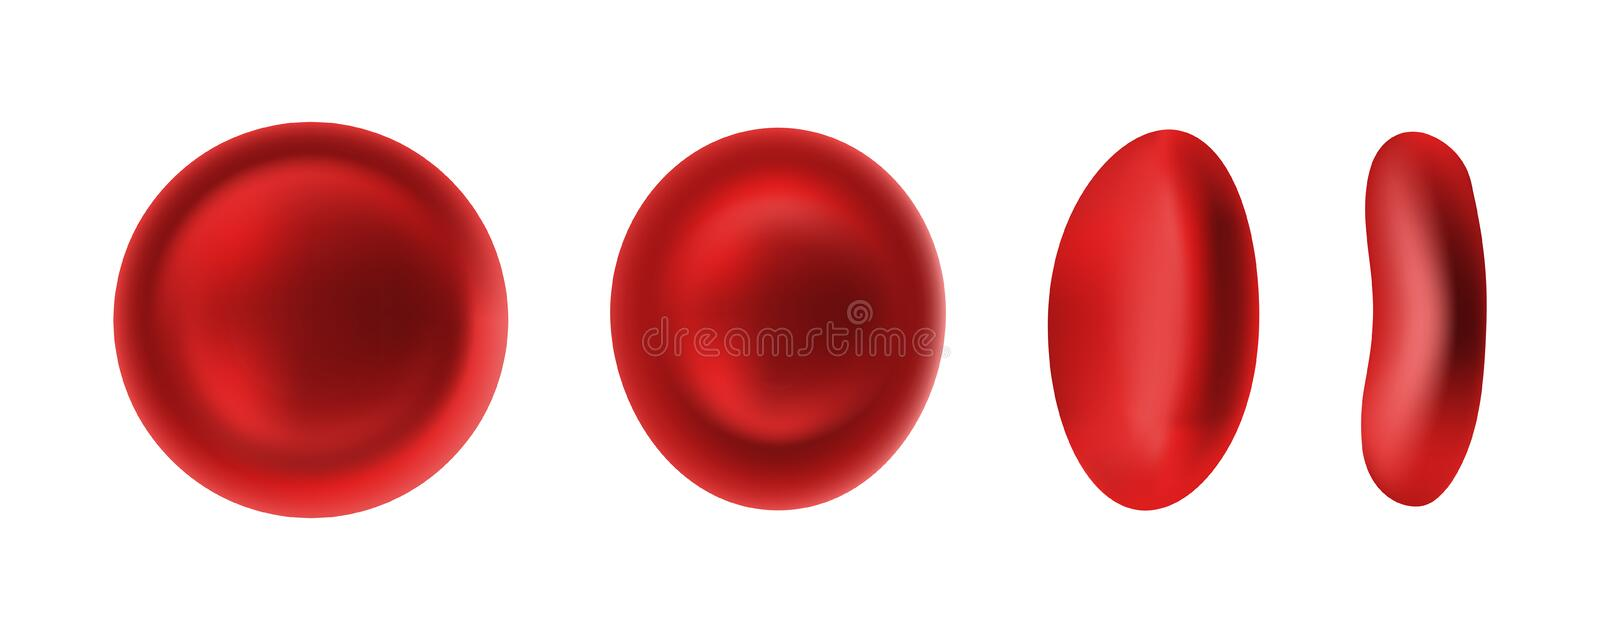 Erythrocyte or red blood cells isolated on white vector illustration